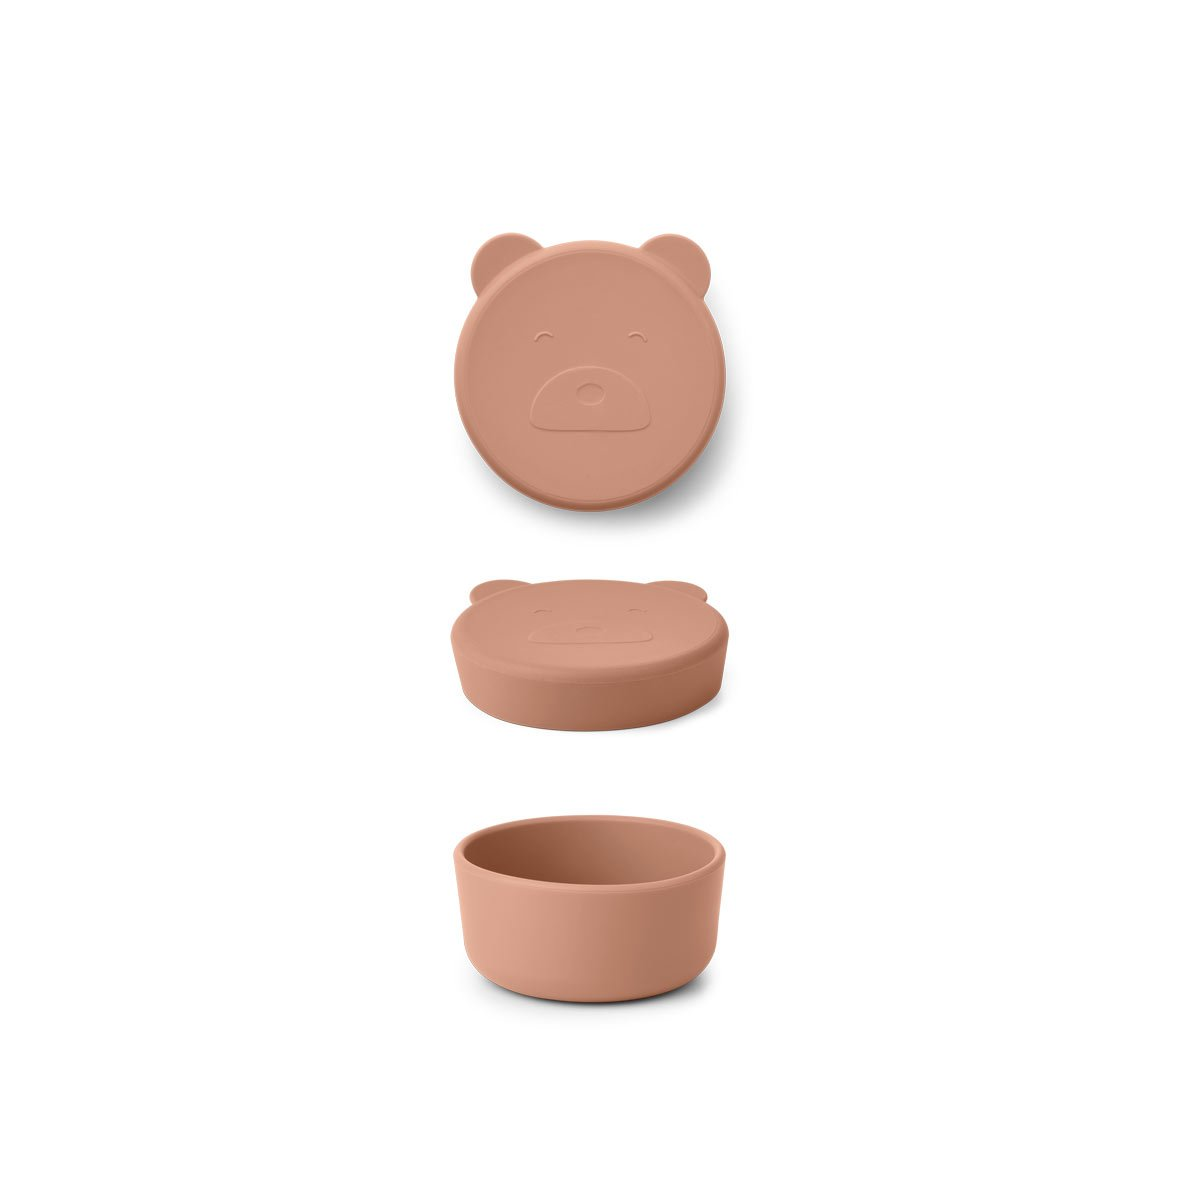 Liewood carrie mr bear snack box, tuscany rose